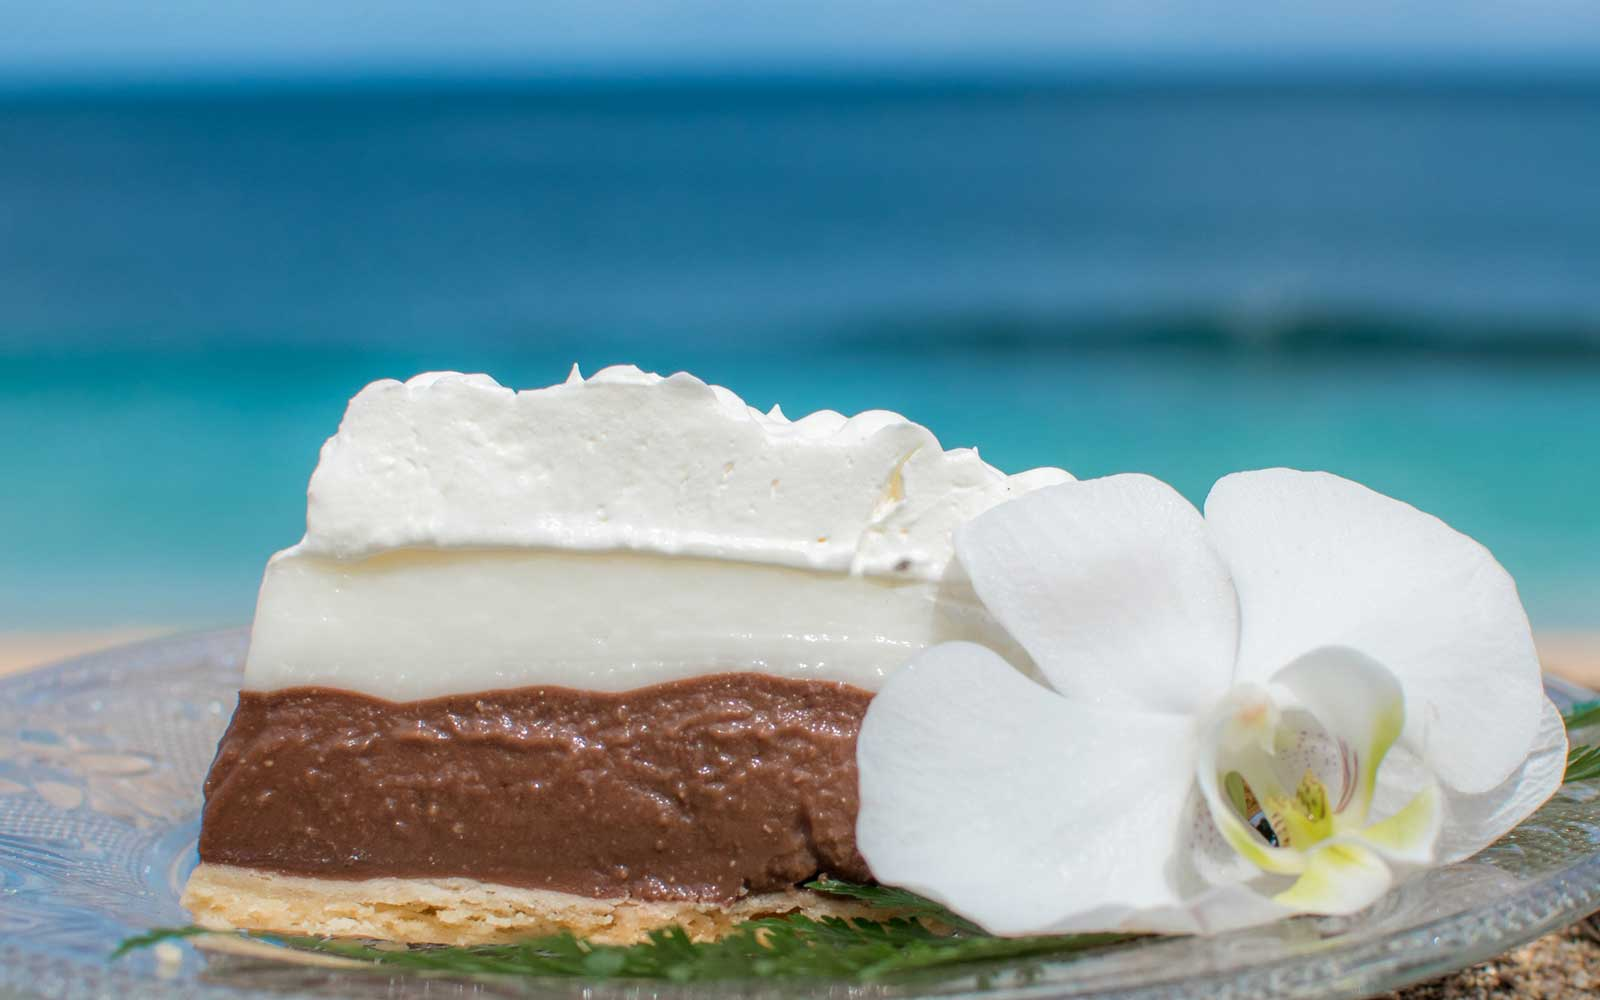 Ted's Bakery on Oahu's North Shore Is One of the Best Pie Shops in the World